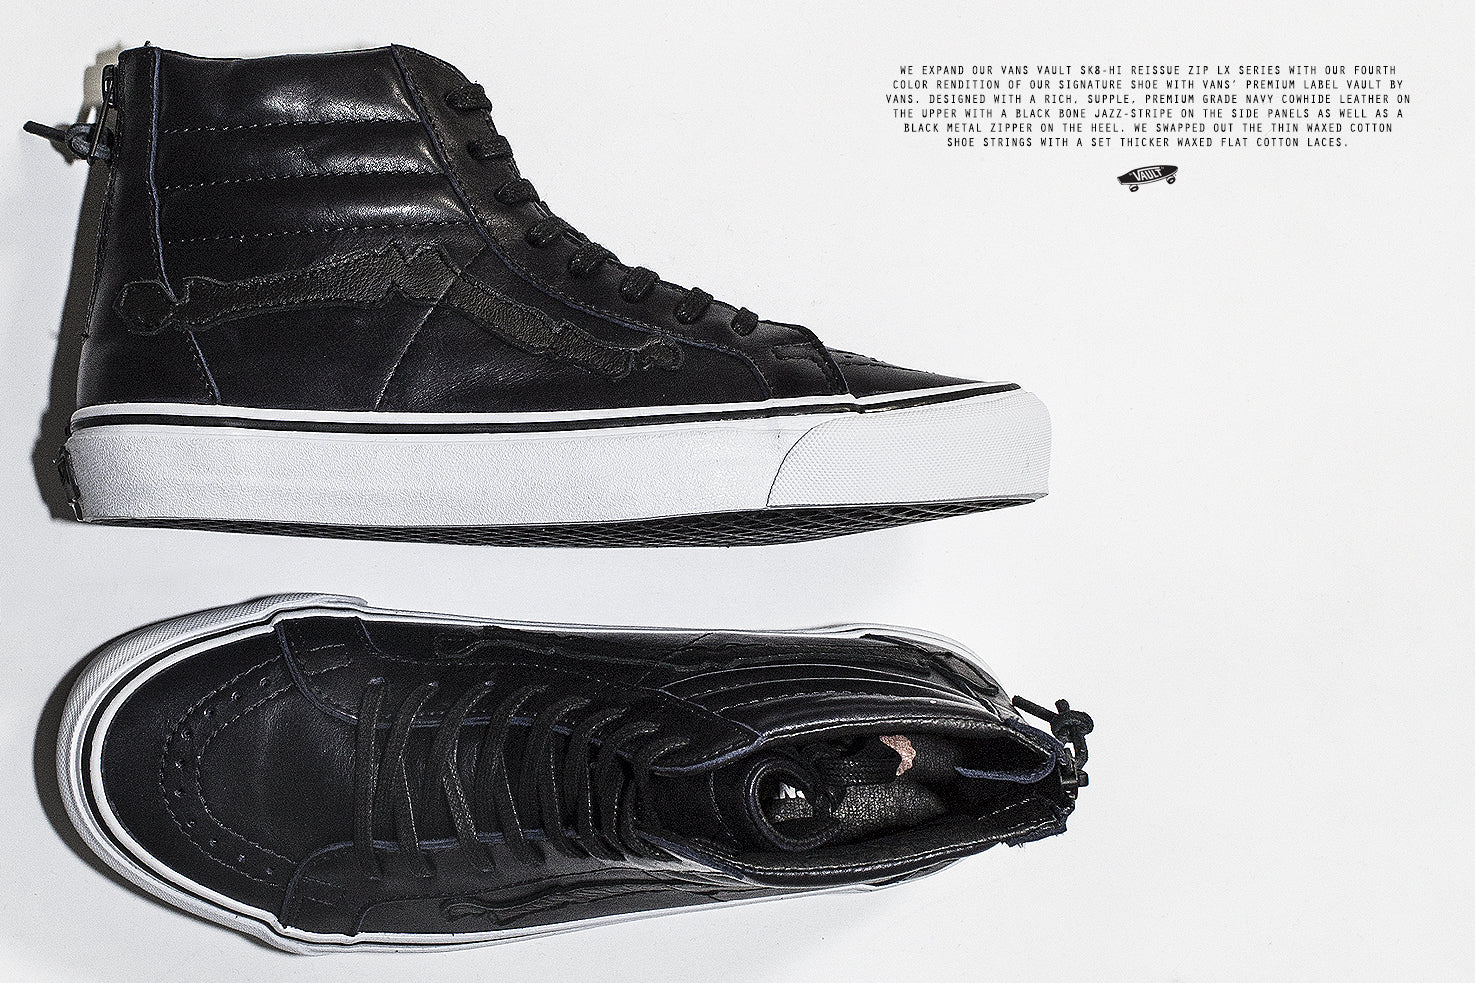 Blends x Vans Vault Sk8-Hi Reissue Zip LX 'Peacoat'